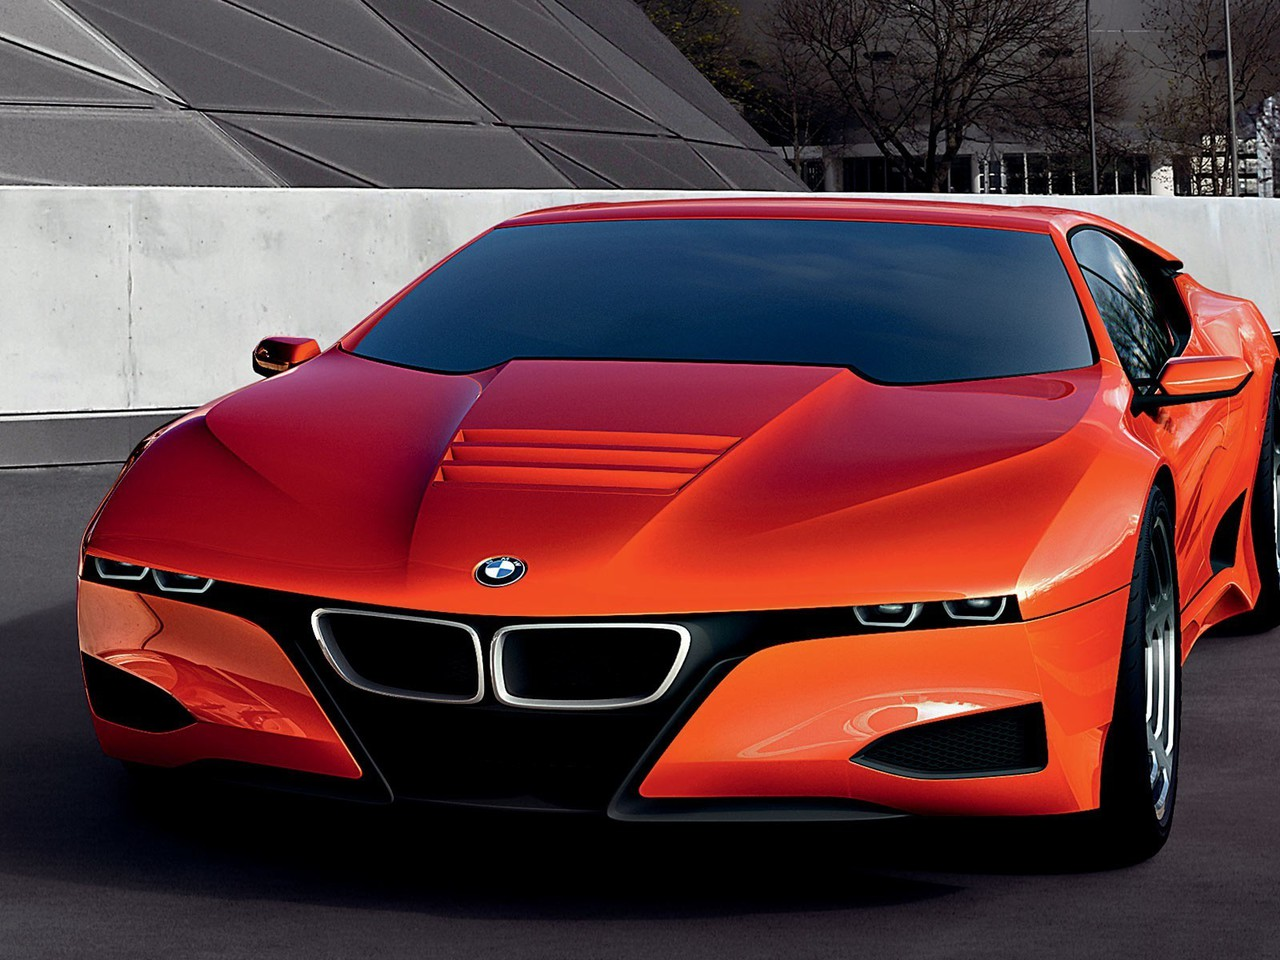 Bmw M1 Cars Concept Art Glossy Texture Pearlescence